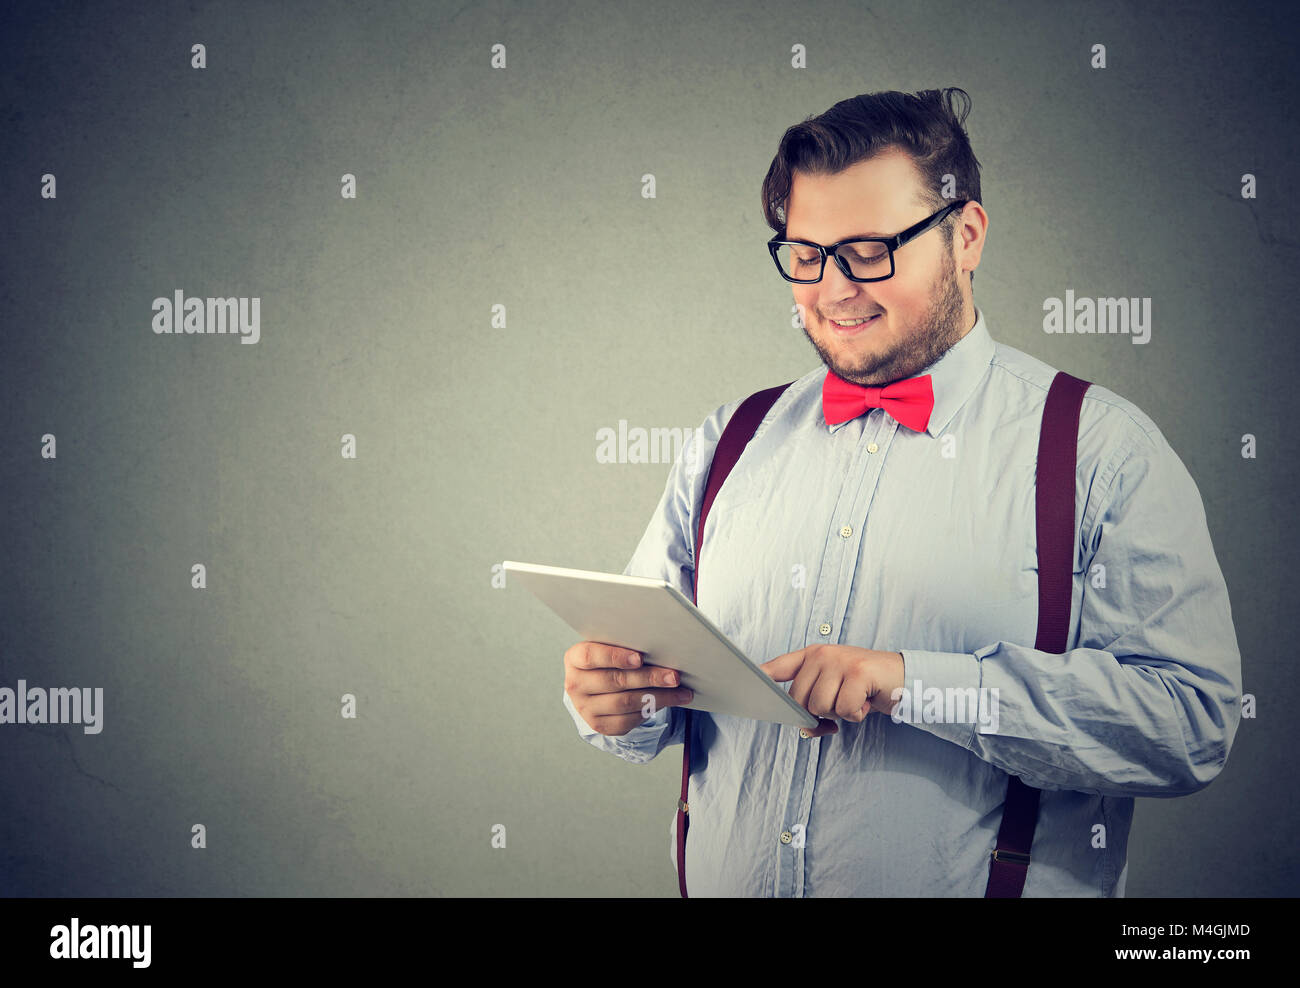 Young cheeky man in eyeglasses looking happy while tapping tablet posing on gray backdrop. - Stock Image